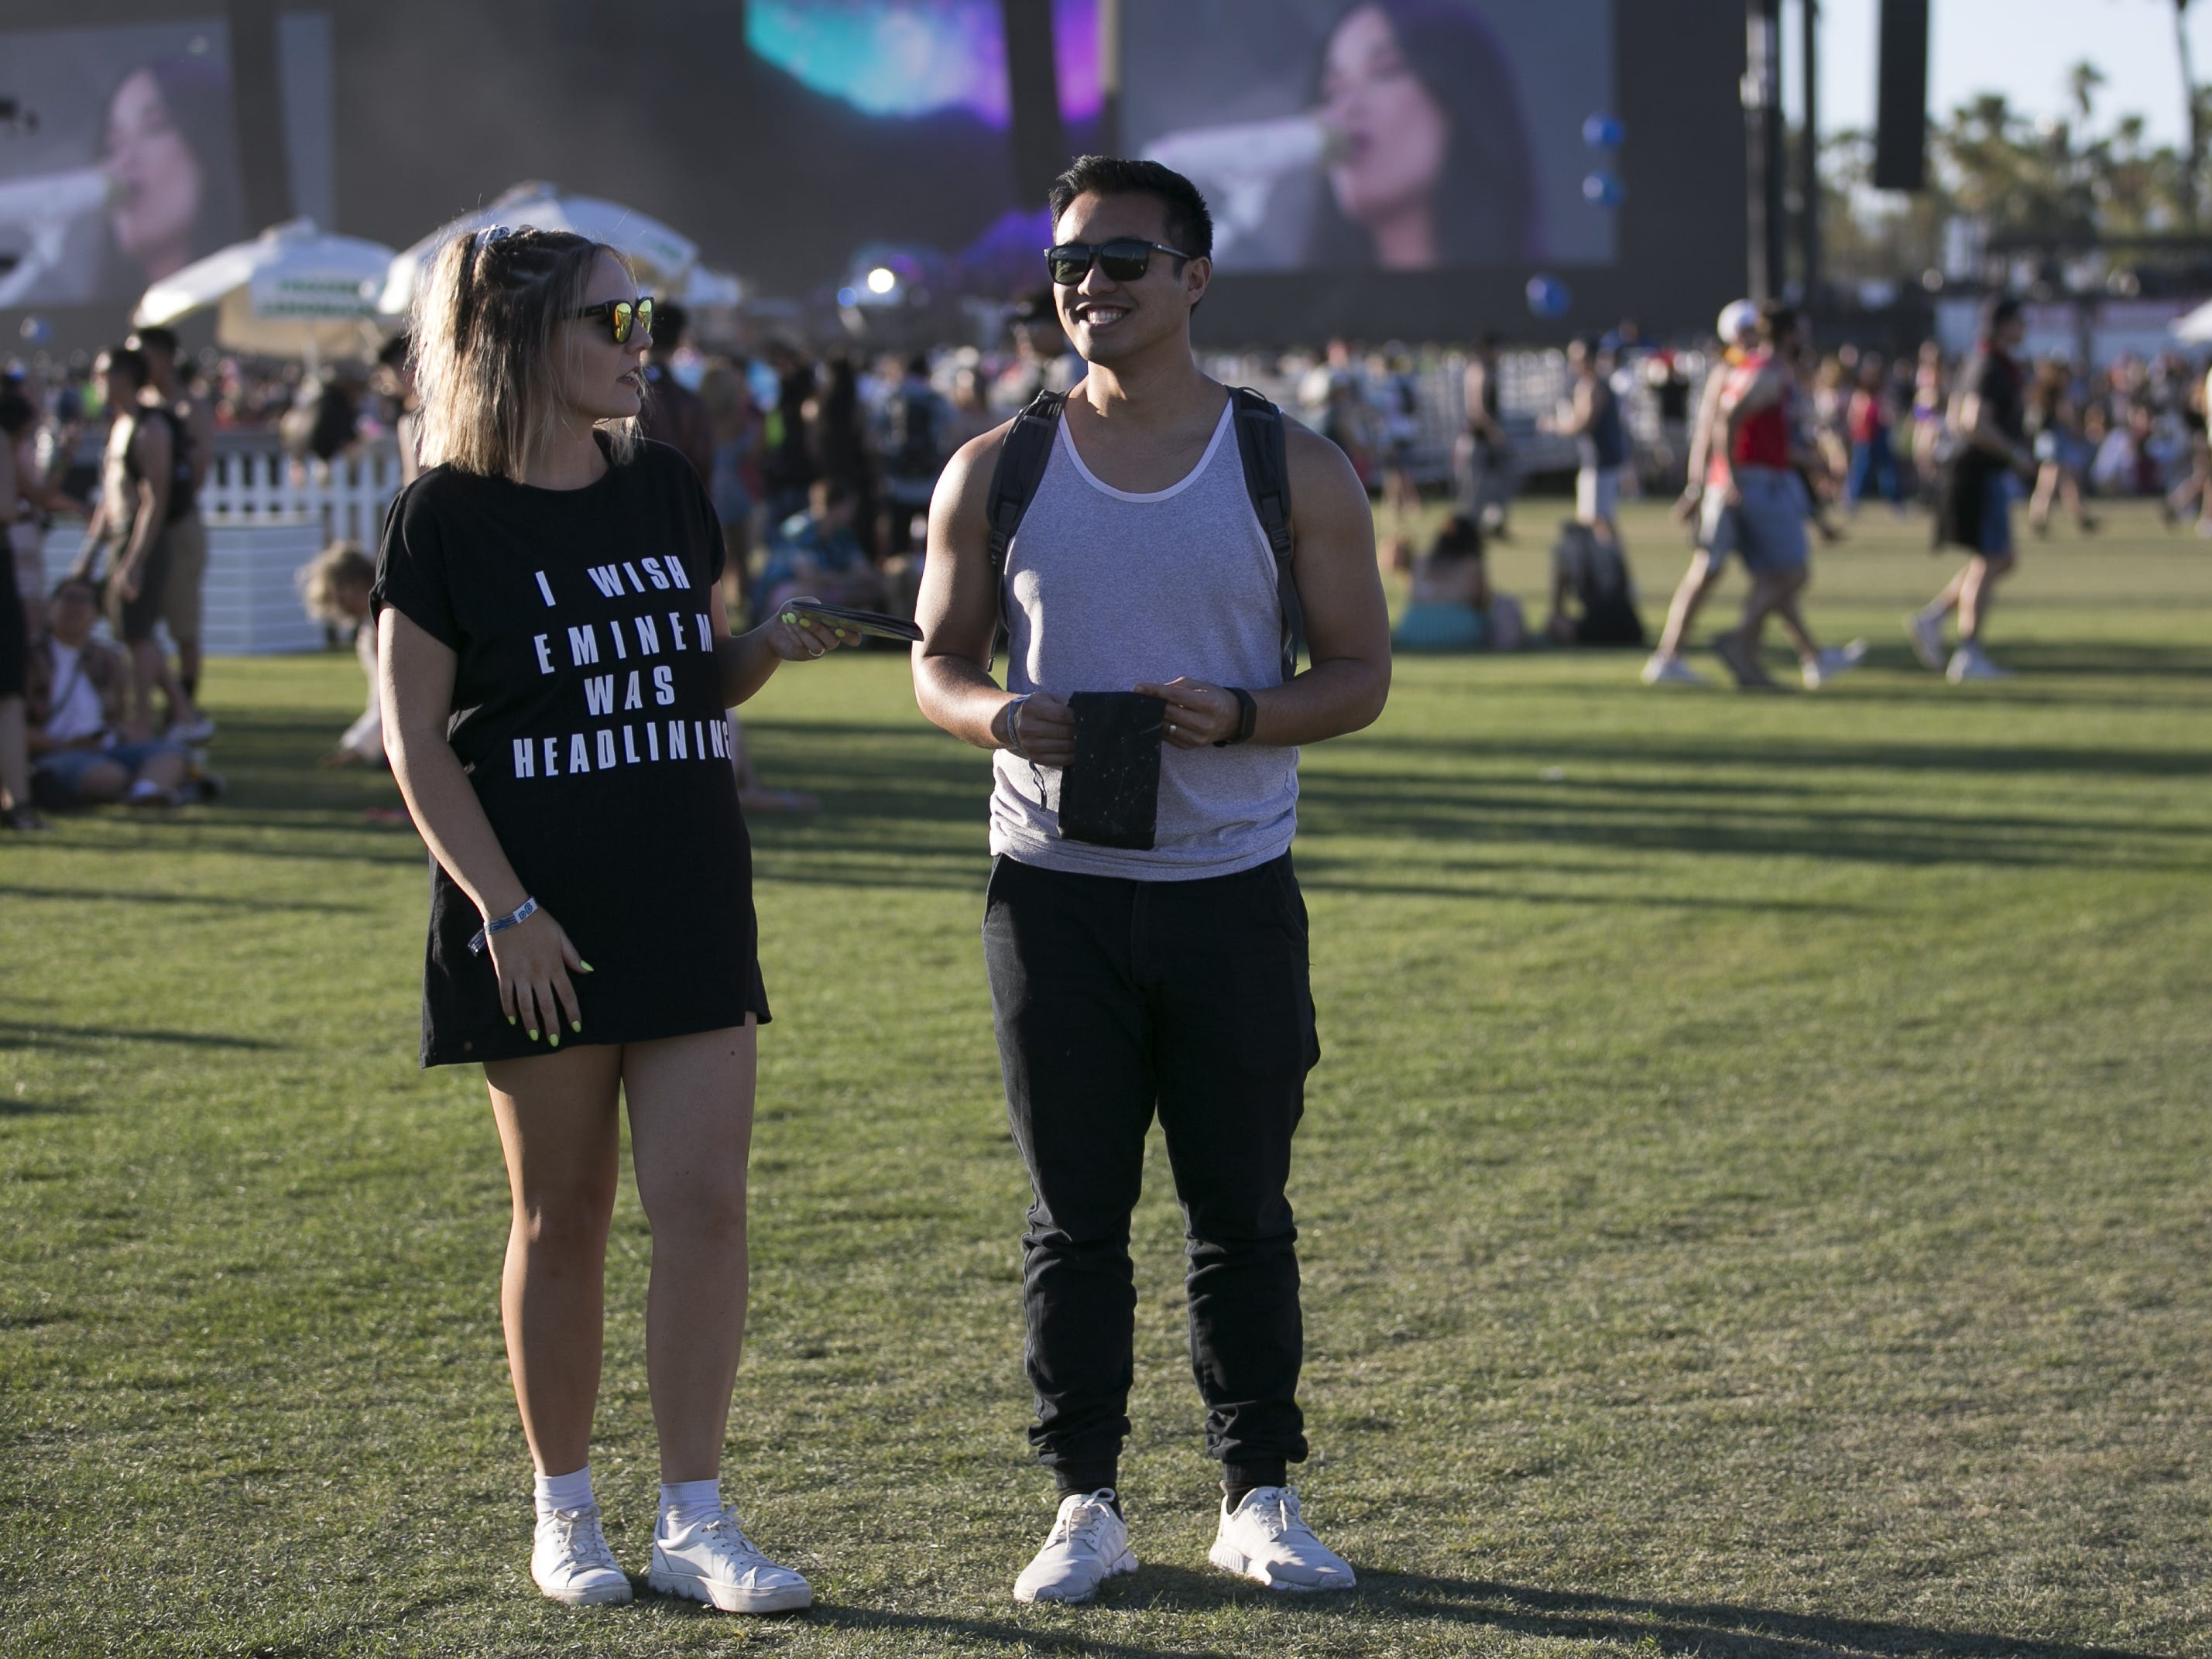 Holly Nguyen (left) and her husband Tuan Nguyen (right) walk through the grounds at the Coachella Valley Music and Arts Festival in Indio, Calif. on April 12, 2019.